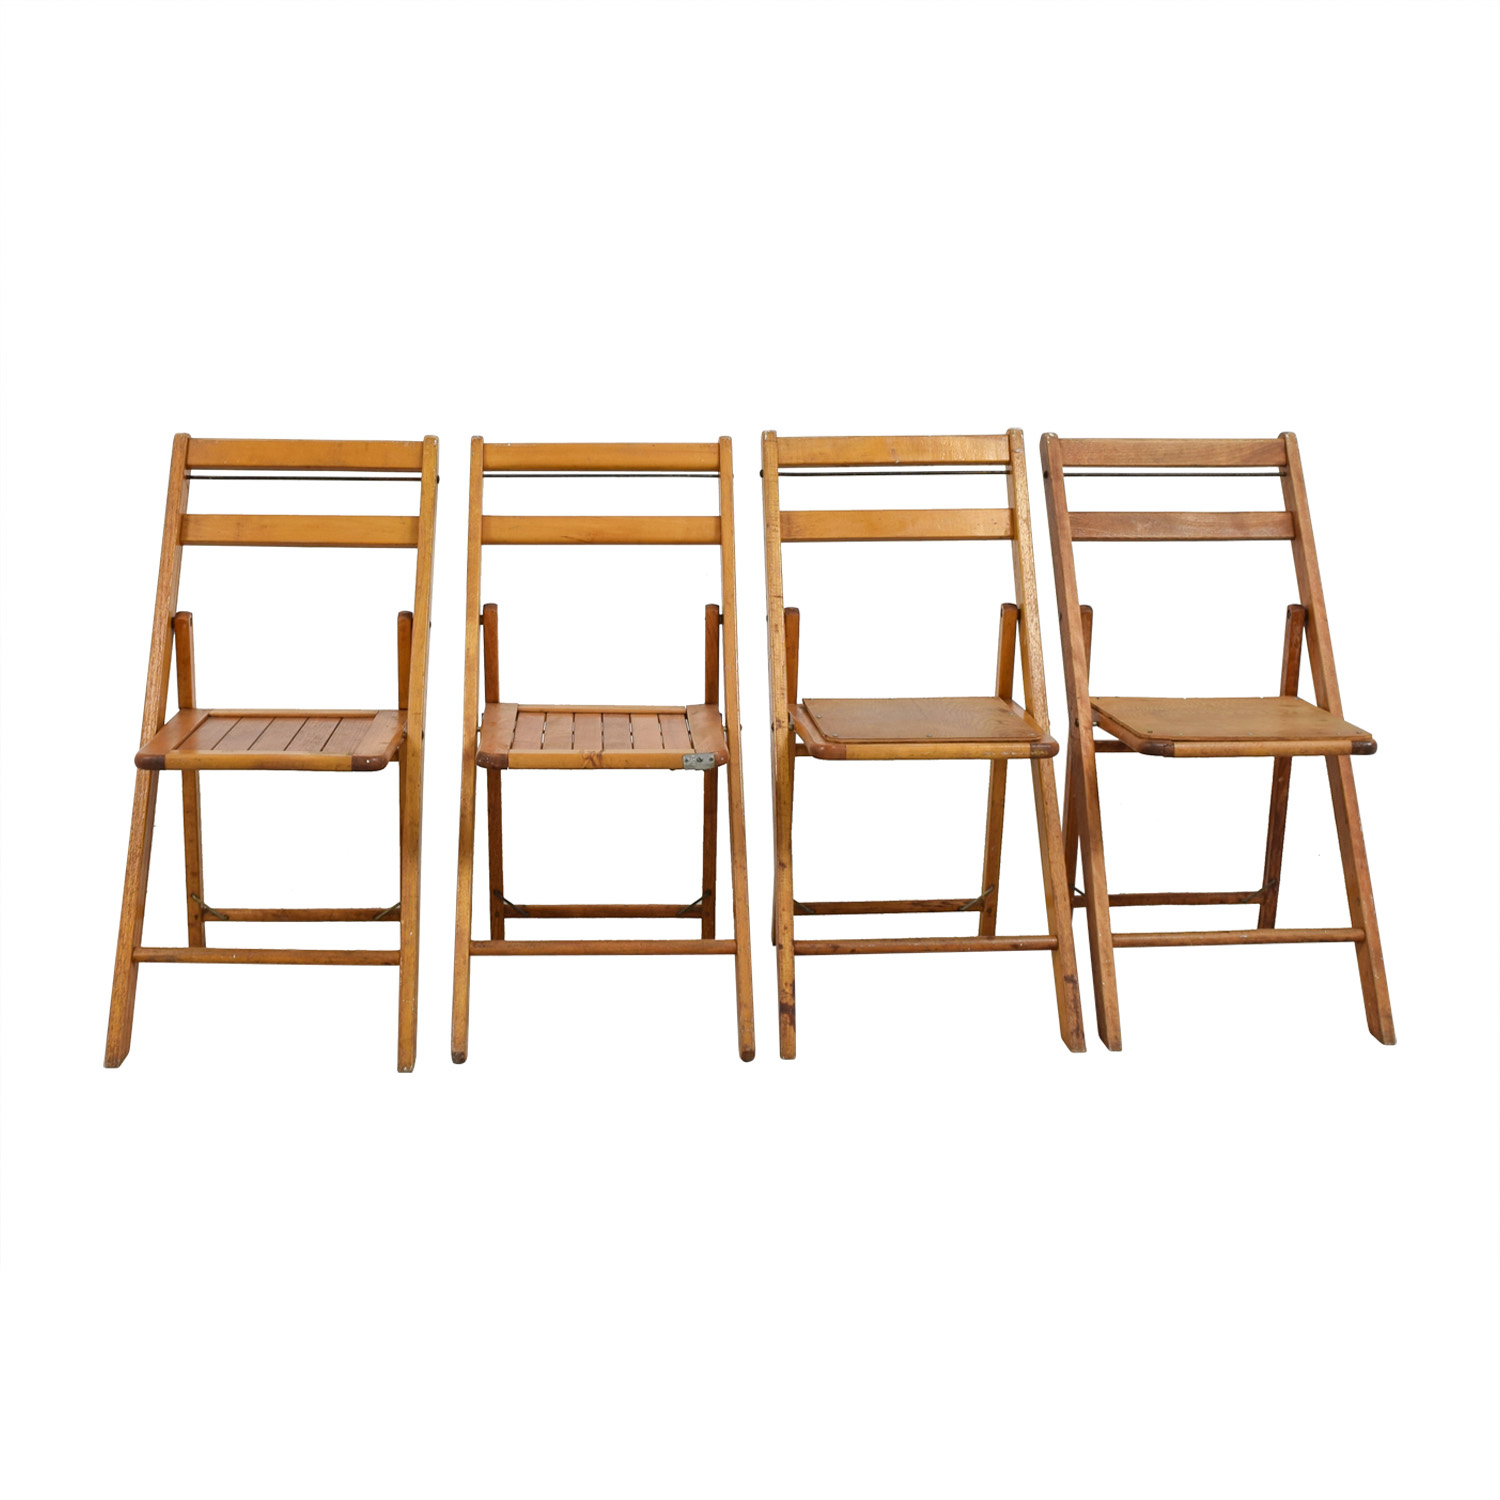 68 Off Rustic Wood Folding Chairs Chairs